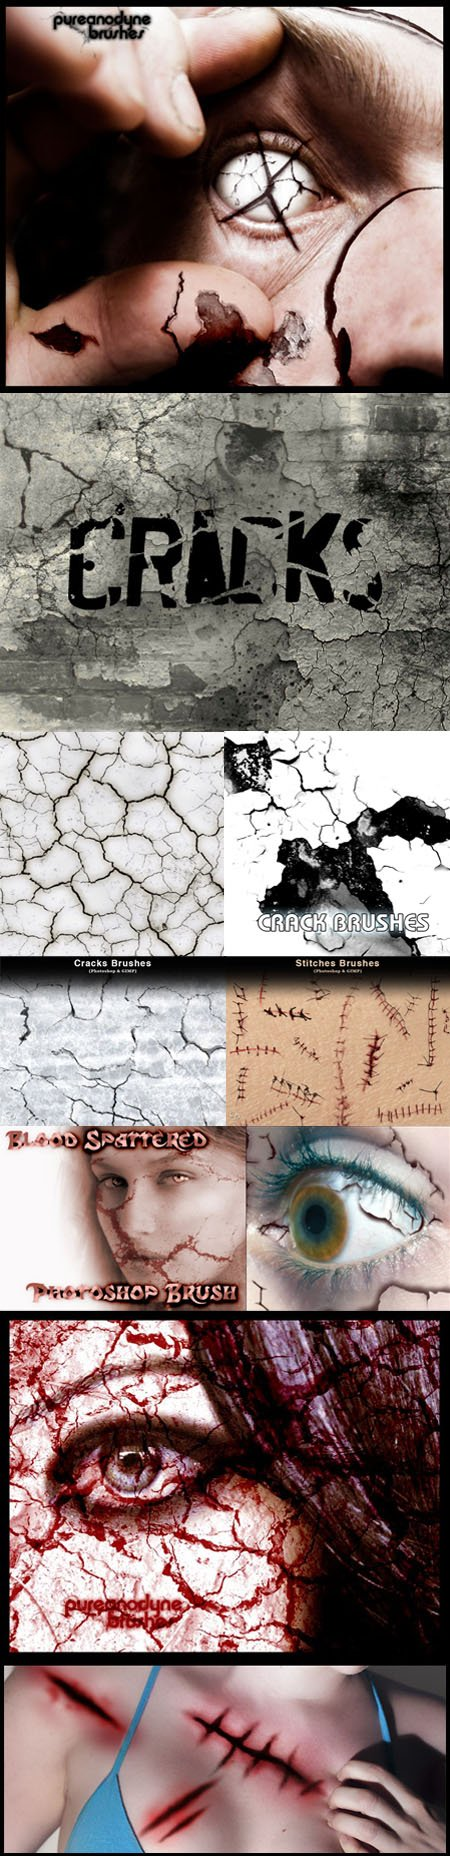 Cracks, Decay, Stitches and Sutures Brushes for Photoshop